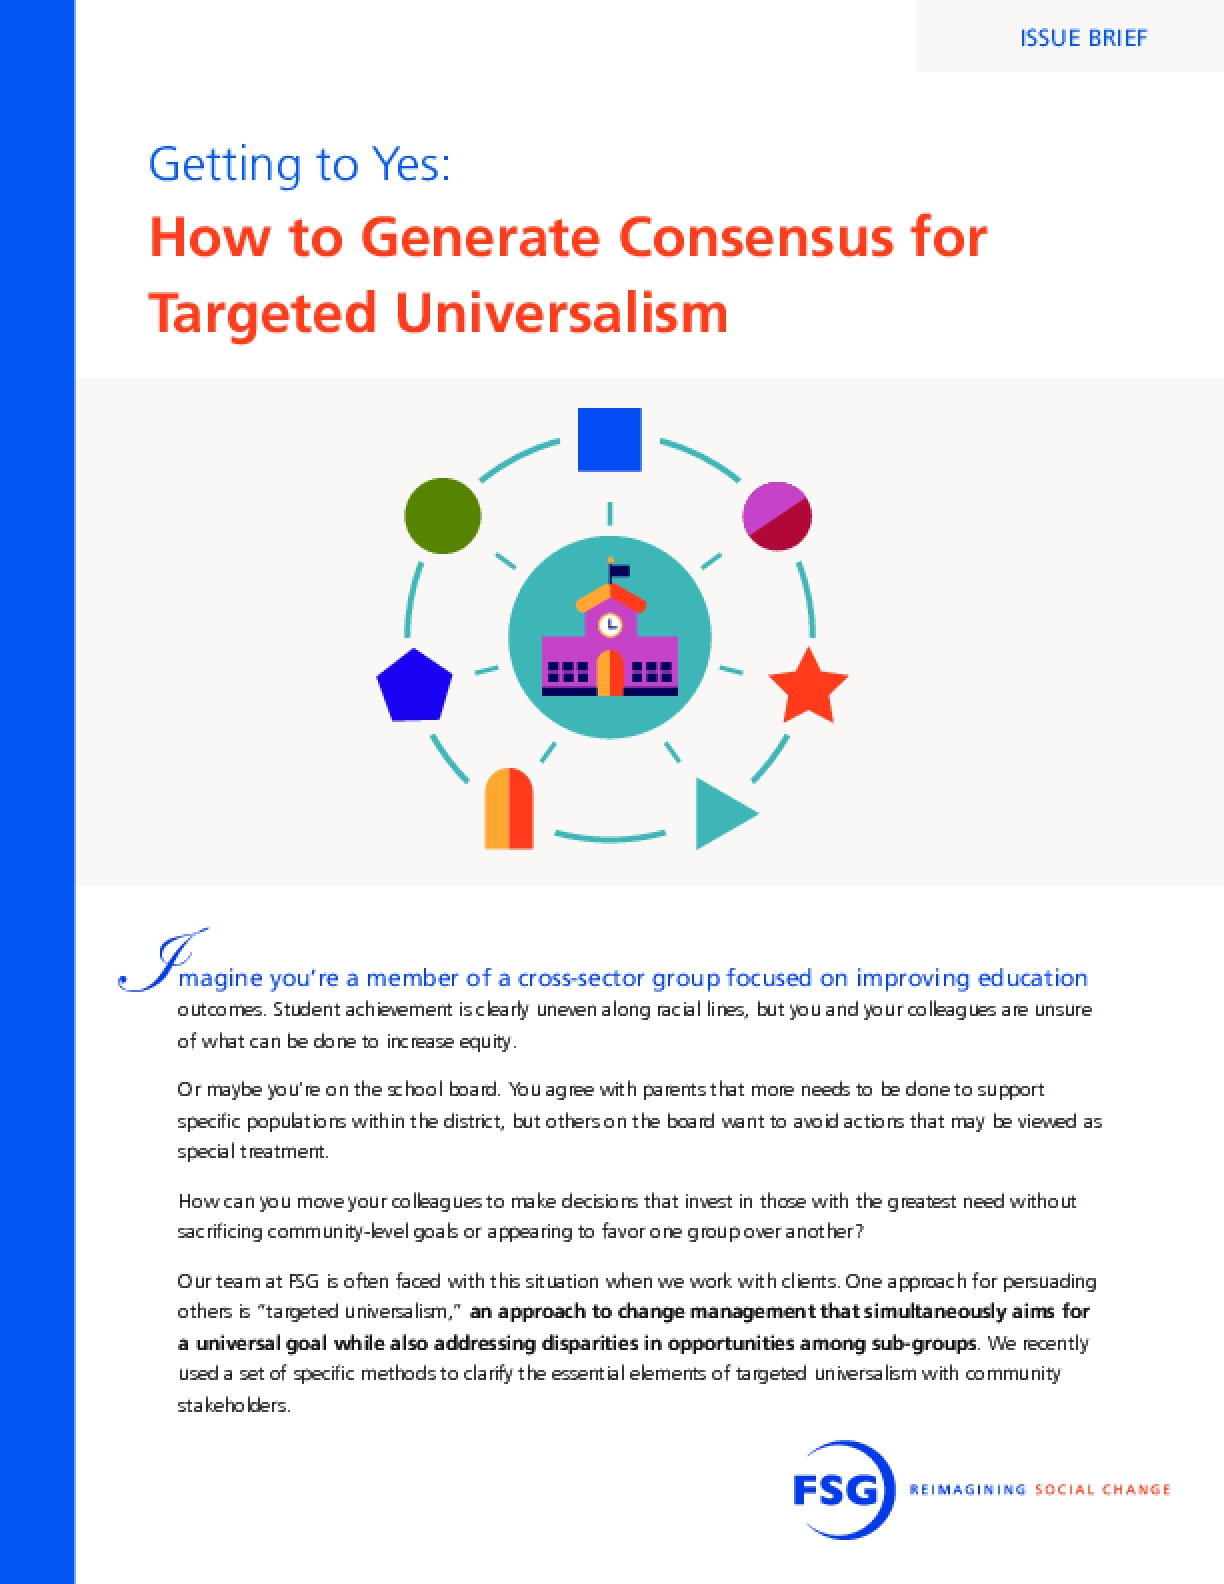 Getting to Yes: How to Generate Consensus for Targeted Universalism